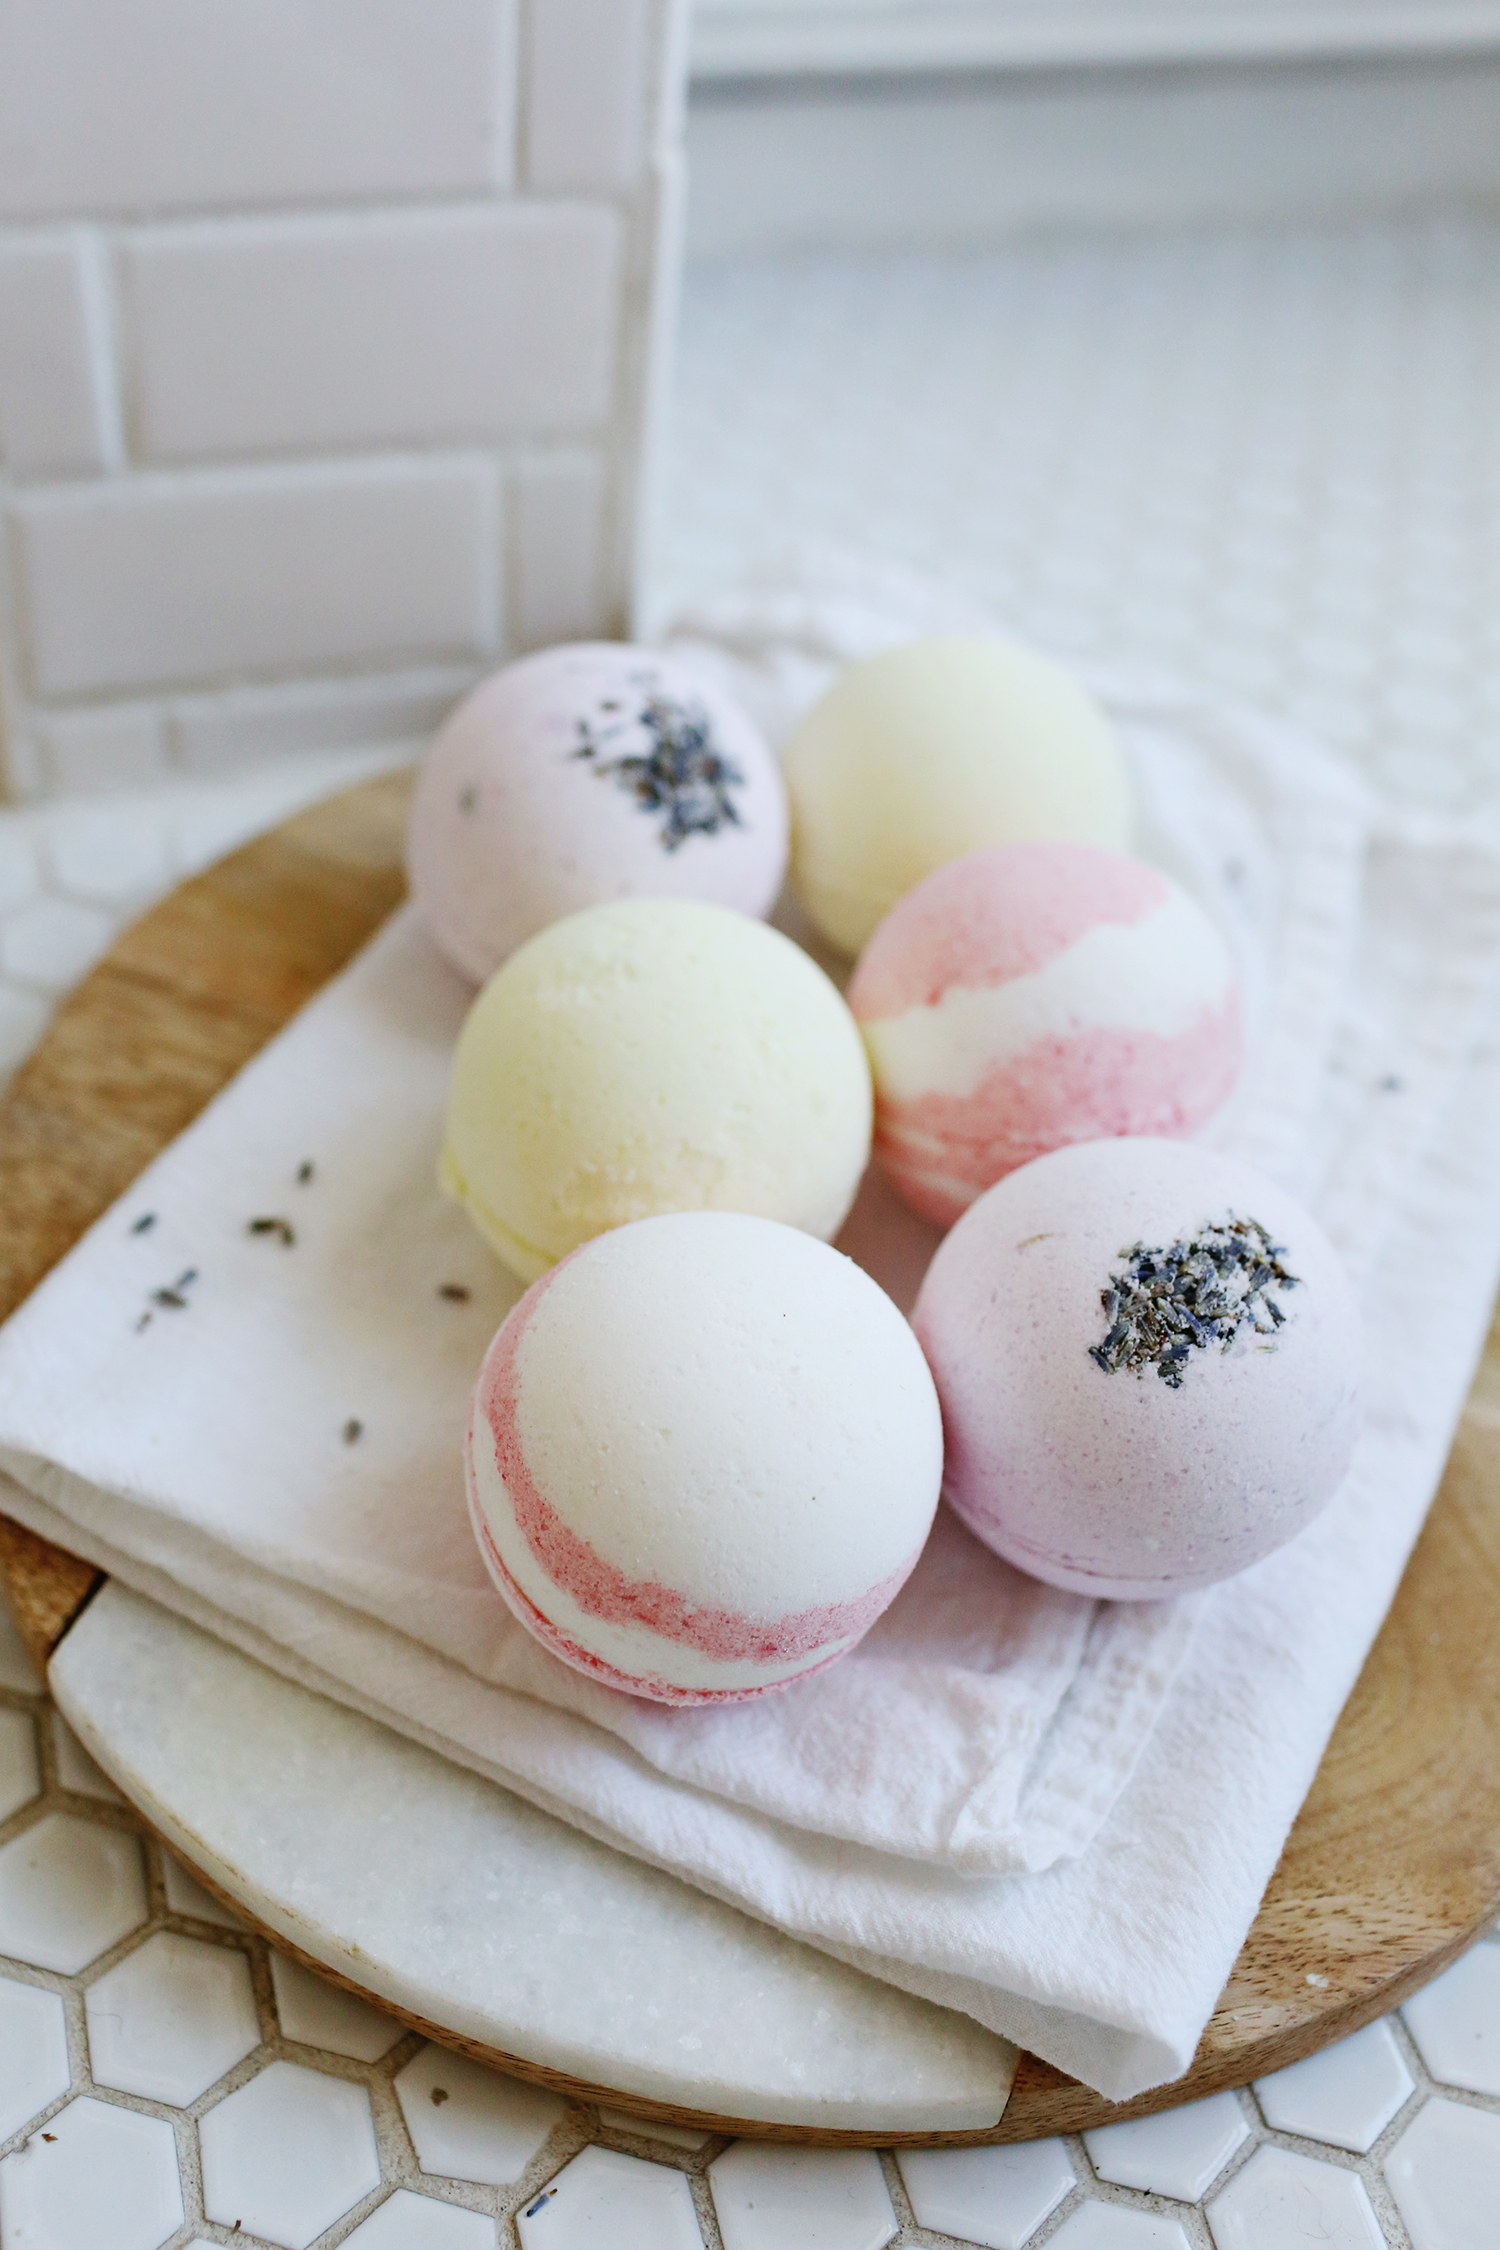 Homemade bath bombs diy